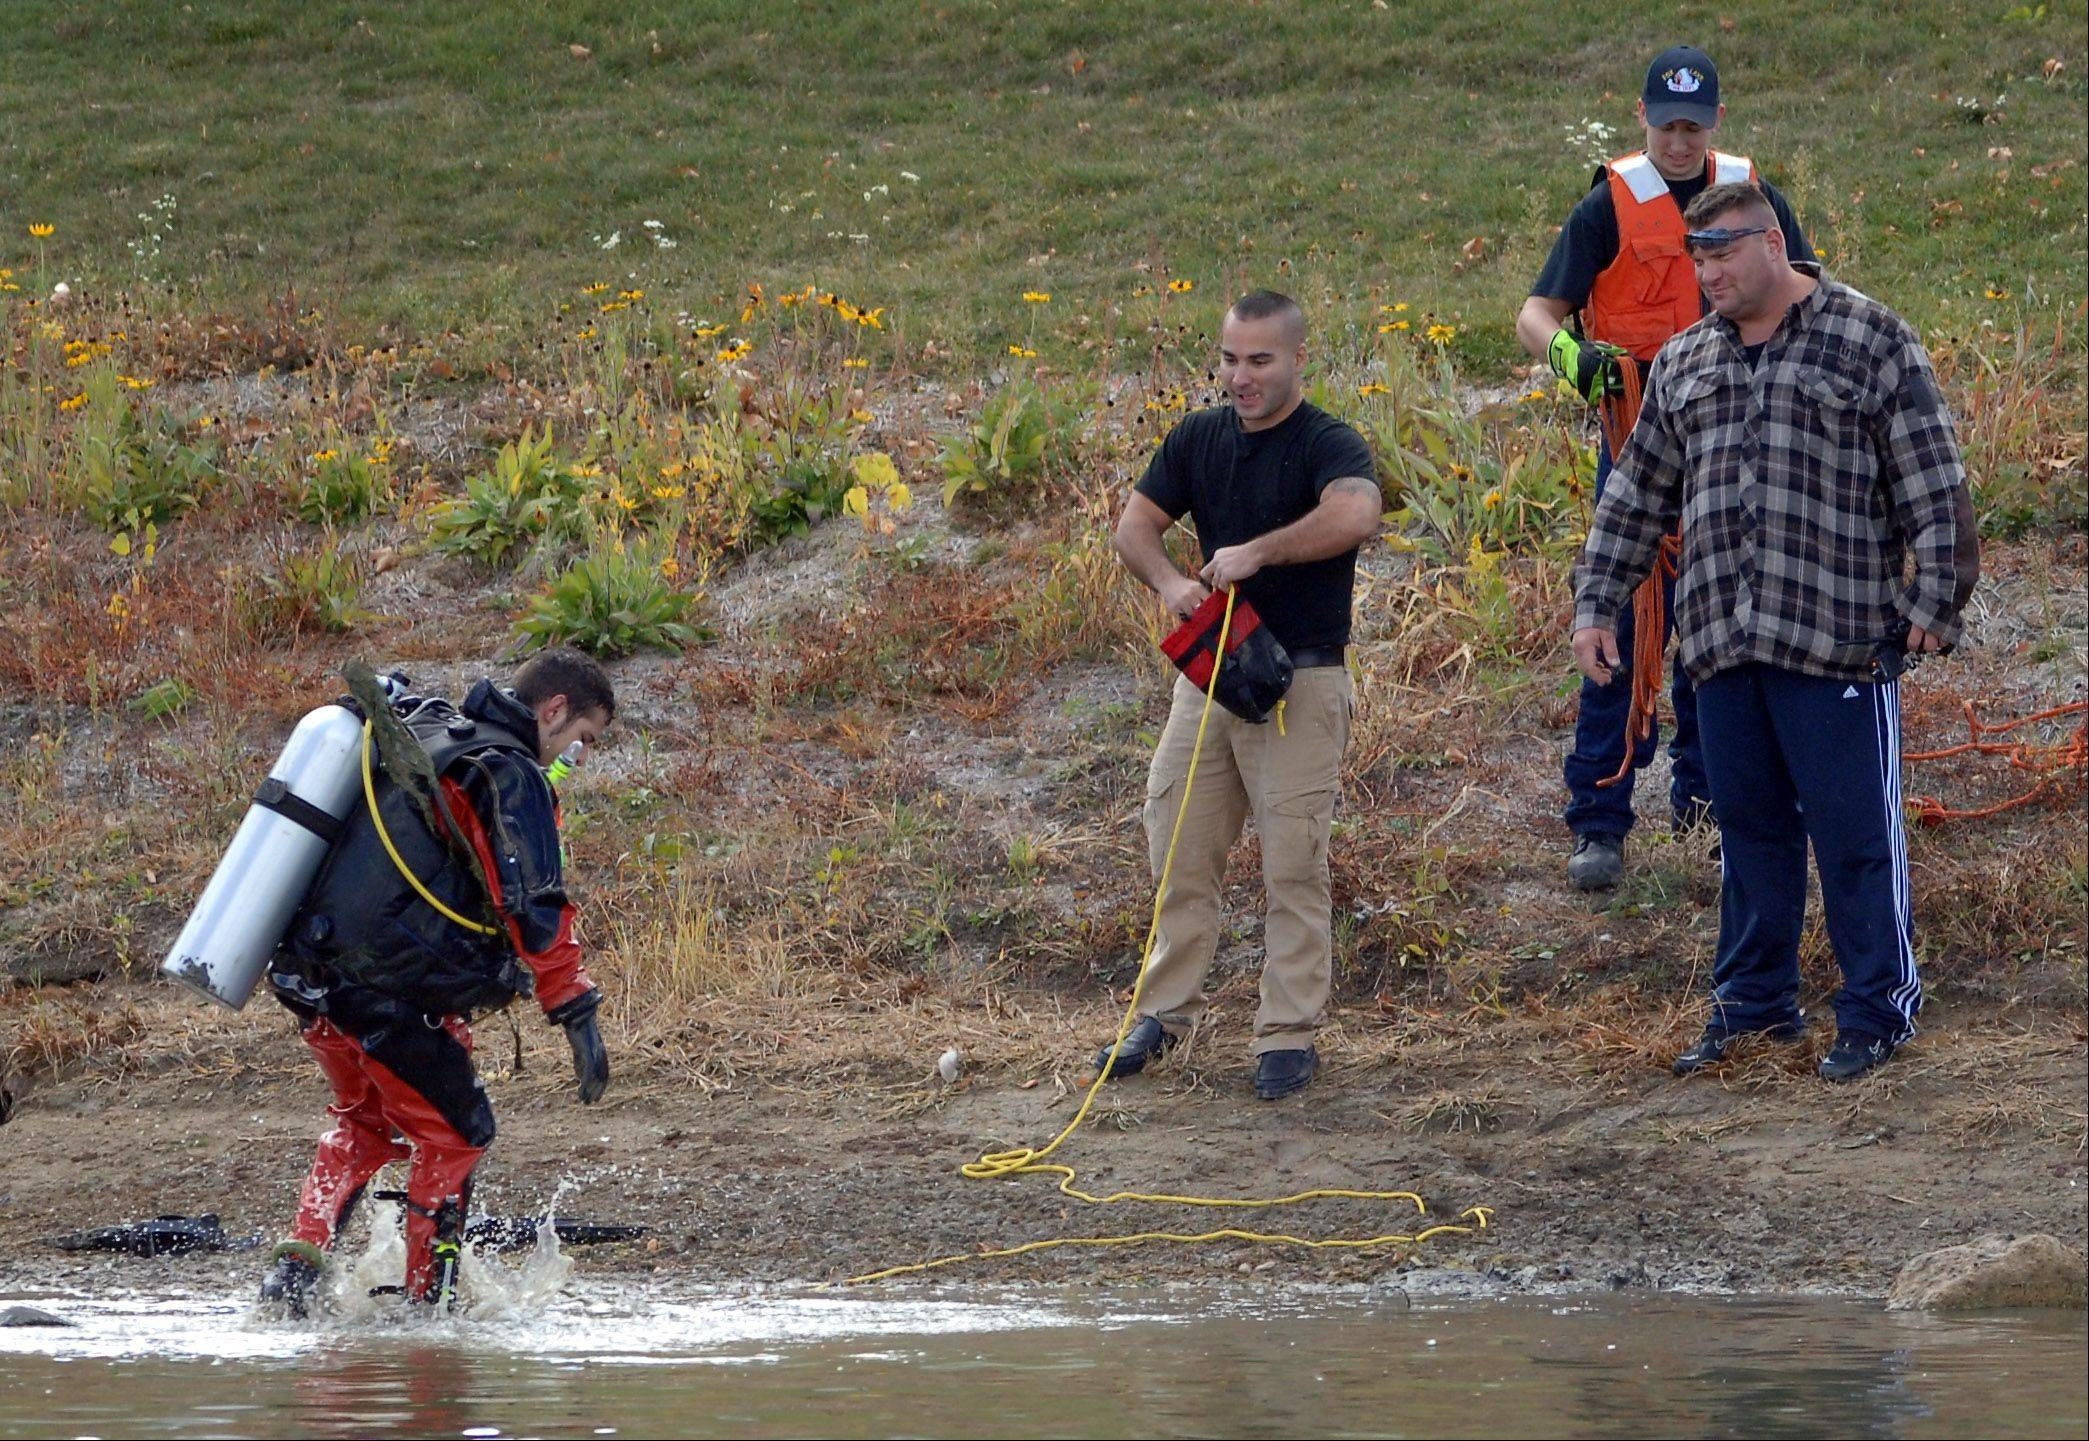 Fox Lake Fire Protection District diver Sam Santiago finishes a search of a pond in the Remington Pointe subdivision in Volo on Friday.